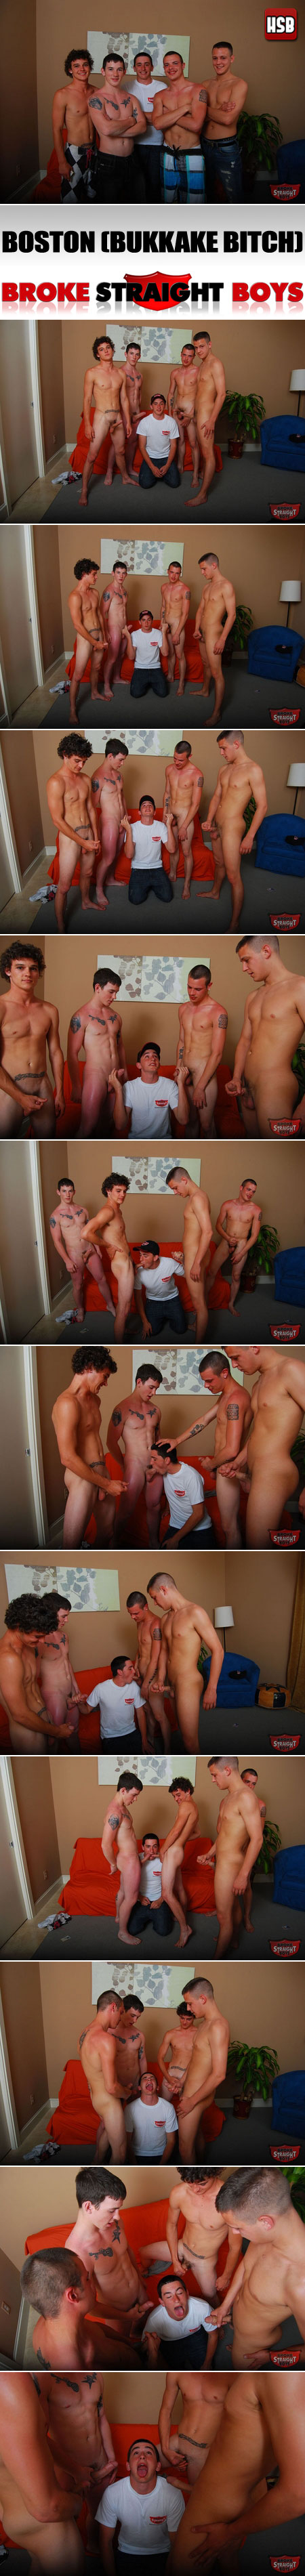 free Broke Straight Boys picture preview